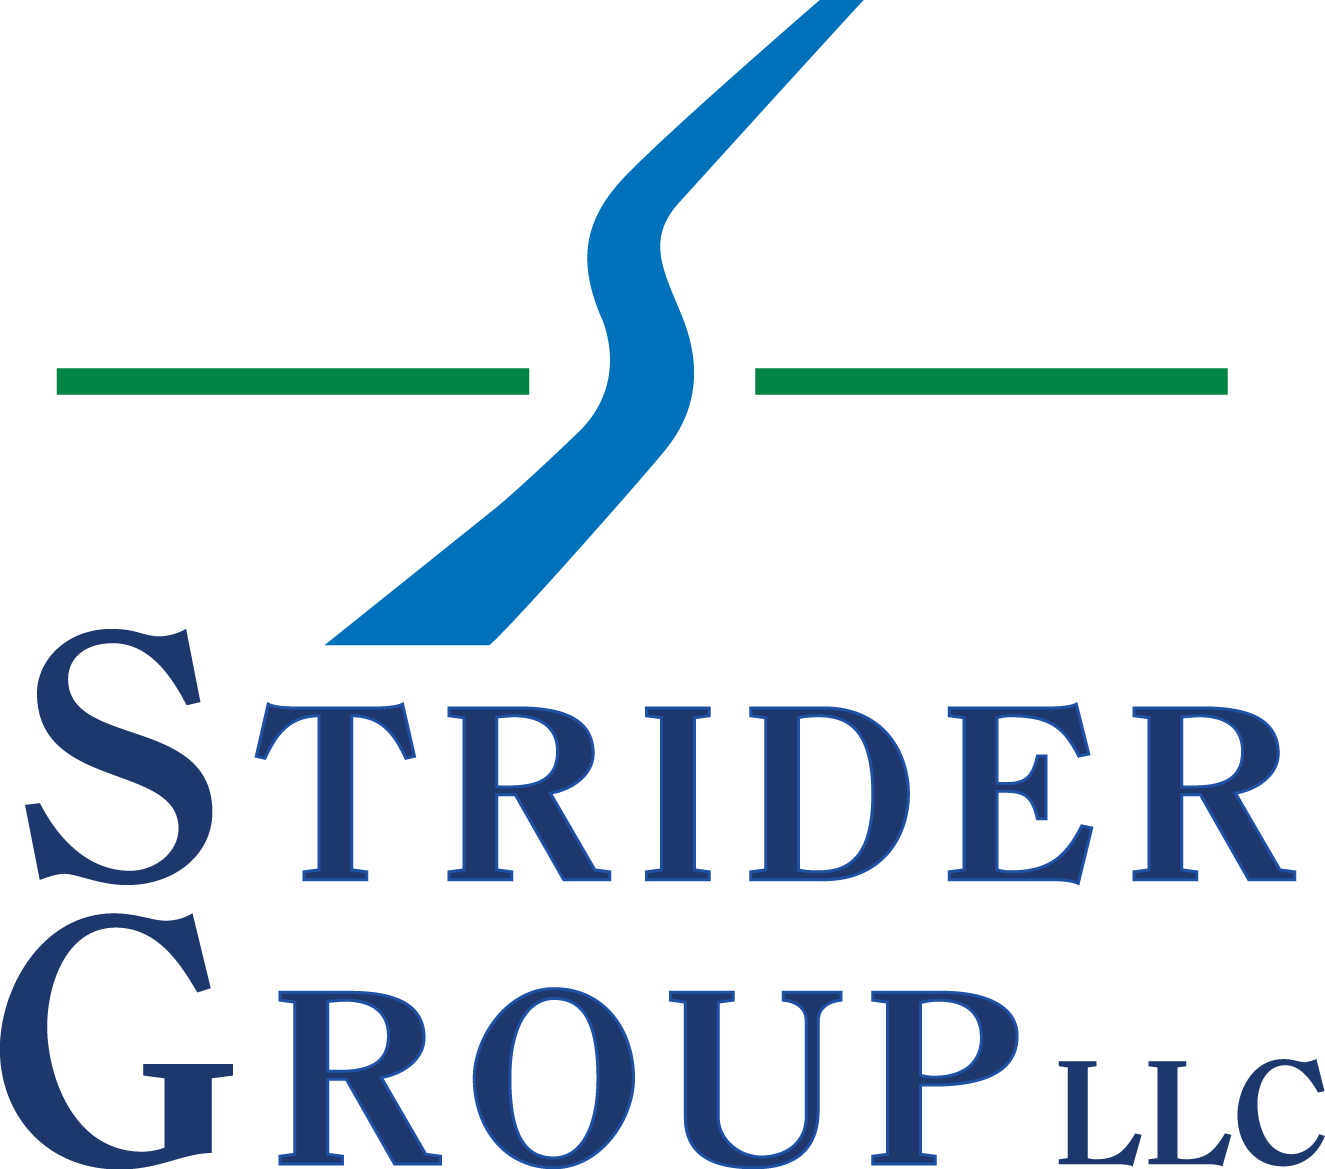 Strider Group LLC